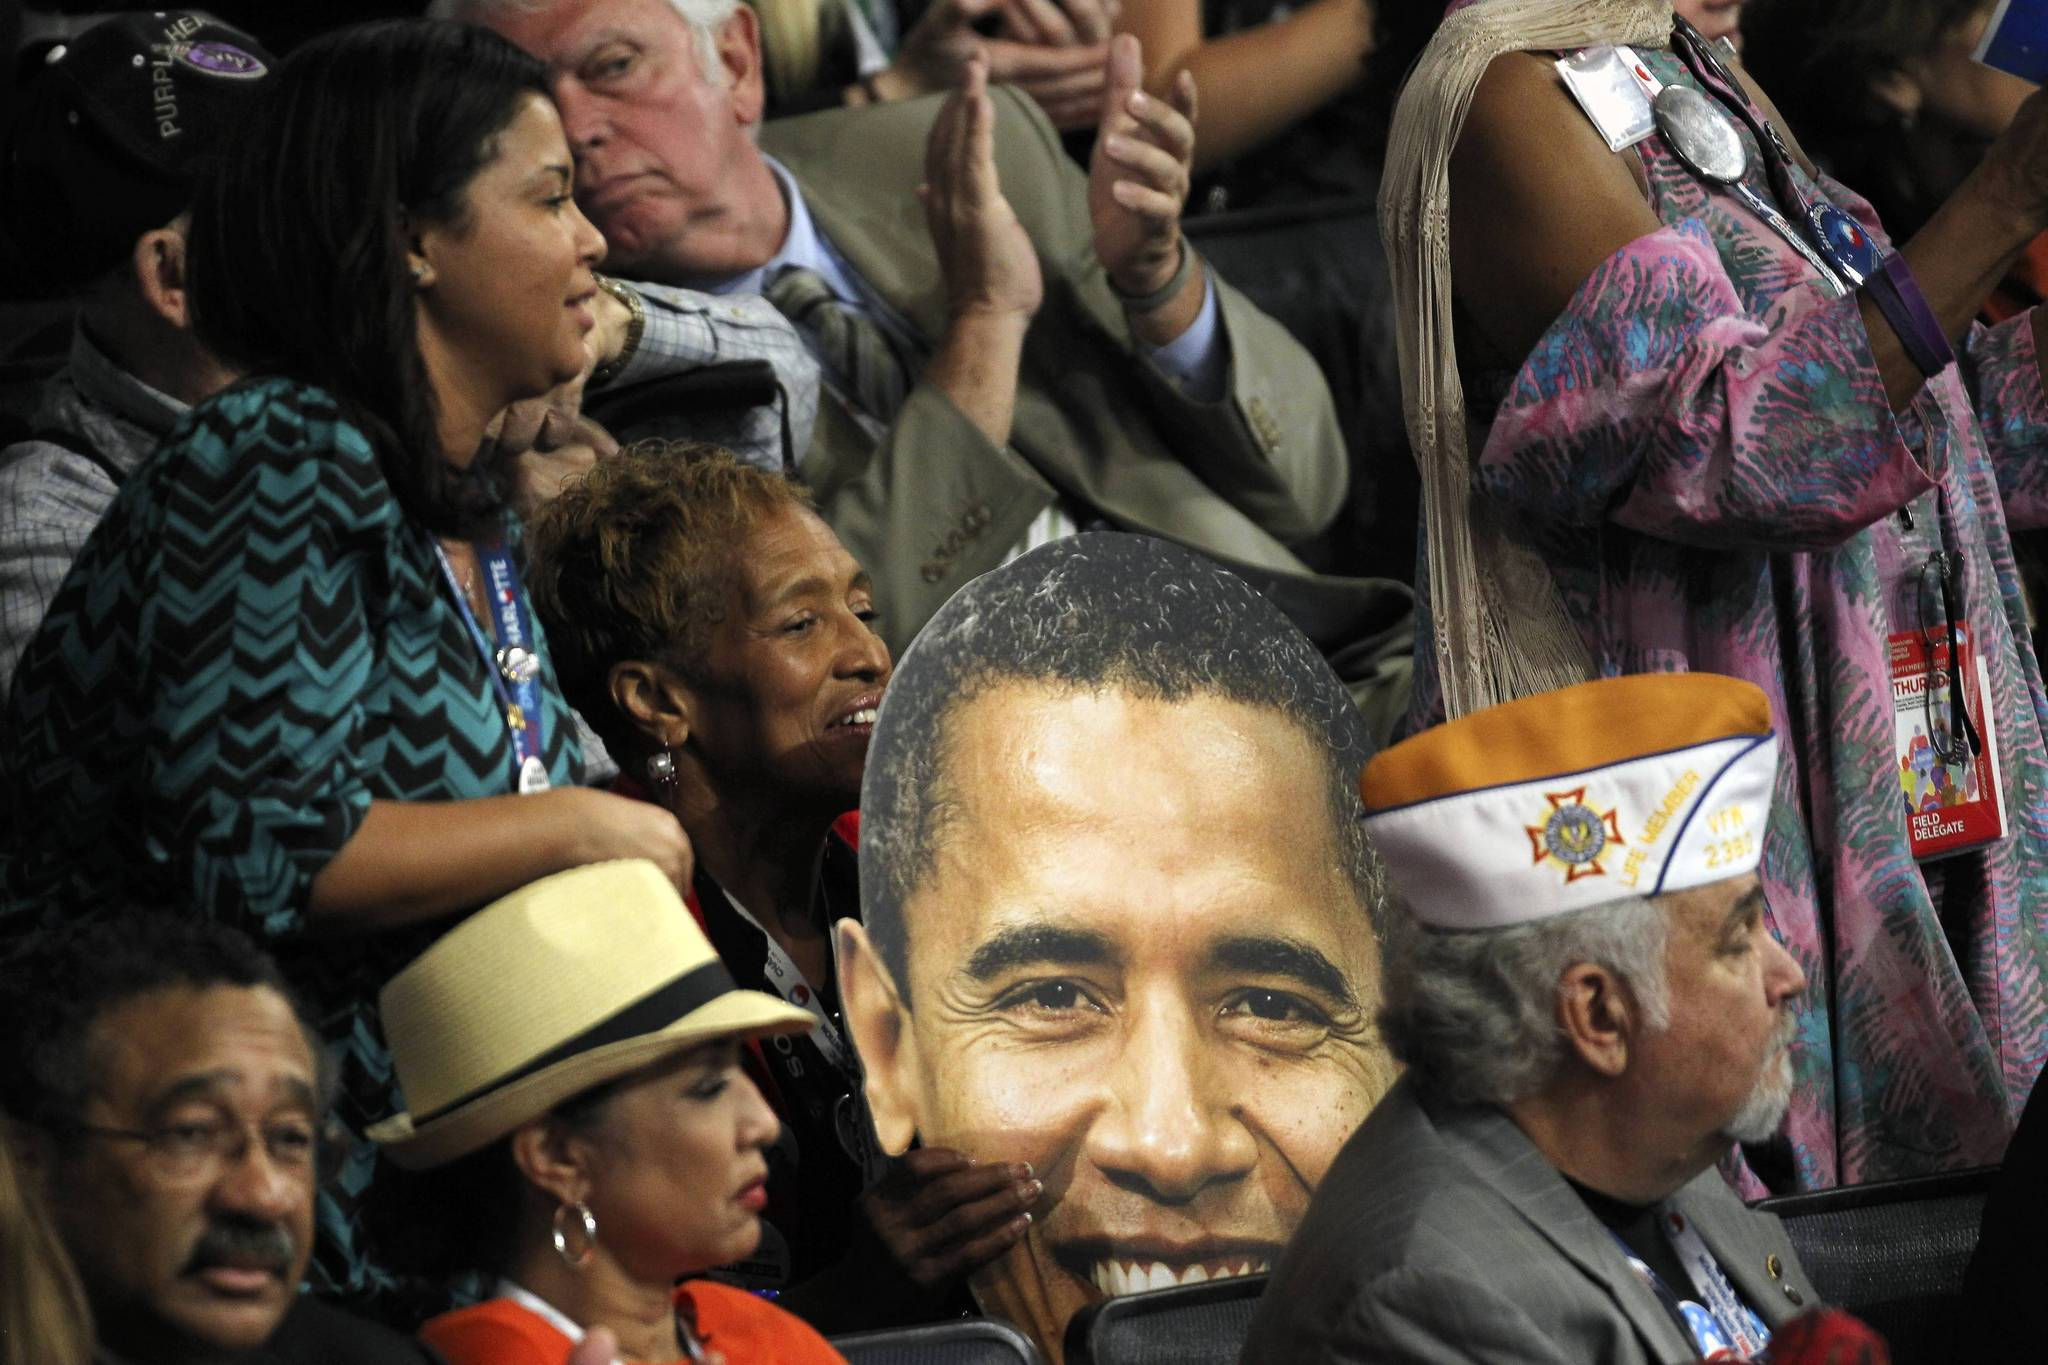 An oversize picture of President Barack Obama's head was visible Thursday in the audience at the Democratic National Convention in Charlotte, N.C.